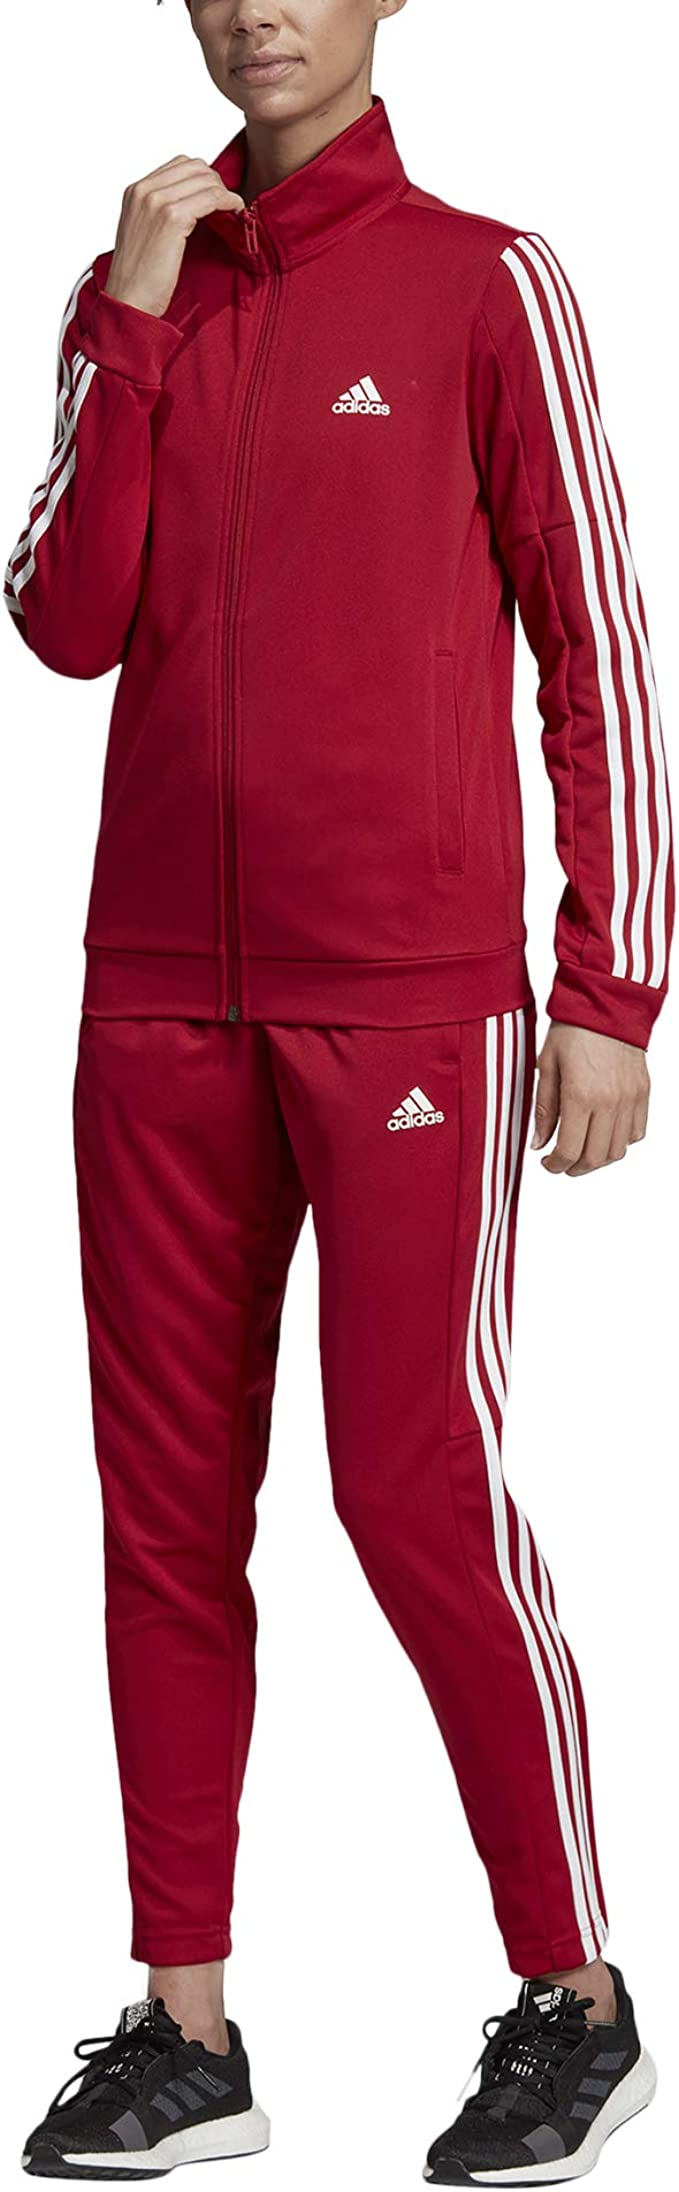 adidas WTS Team Sports Chándal, Mujer: Amazon.es: Deportes y aire ...